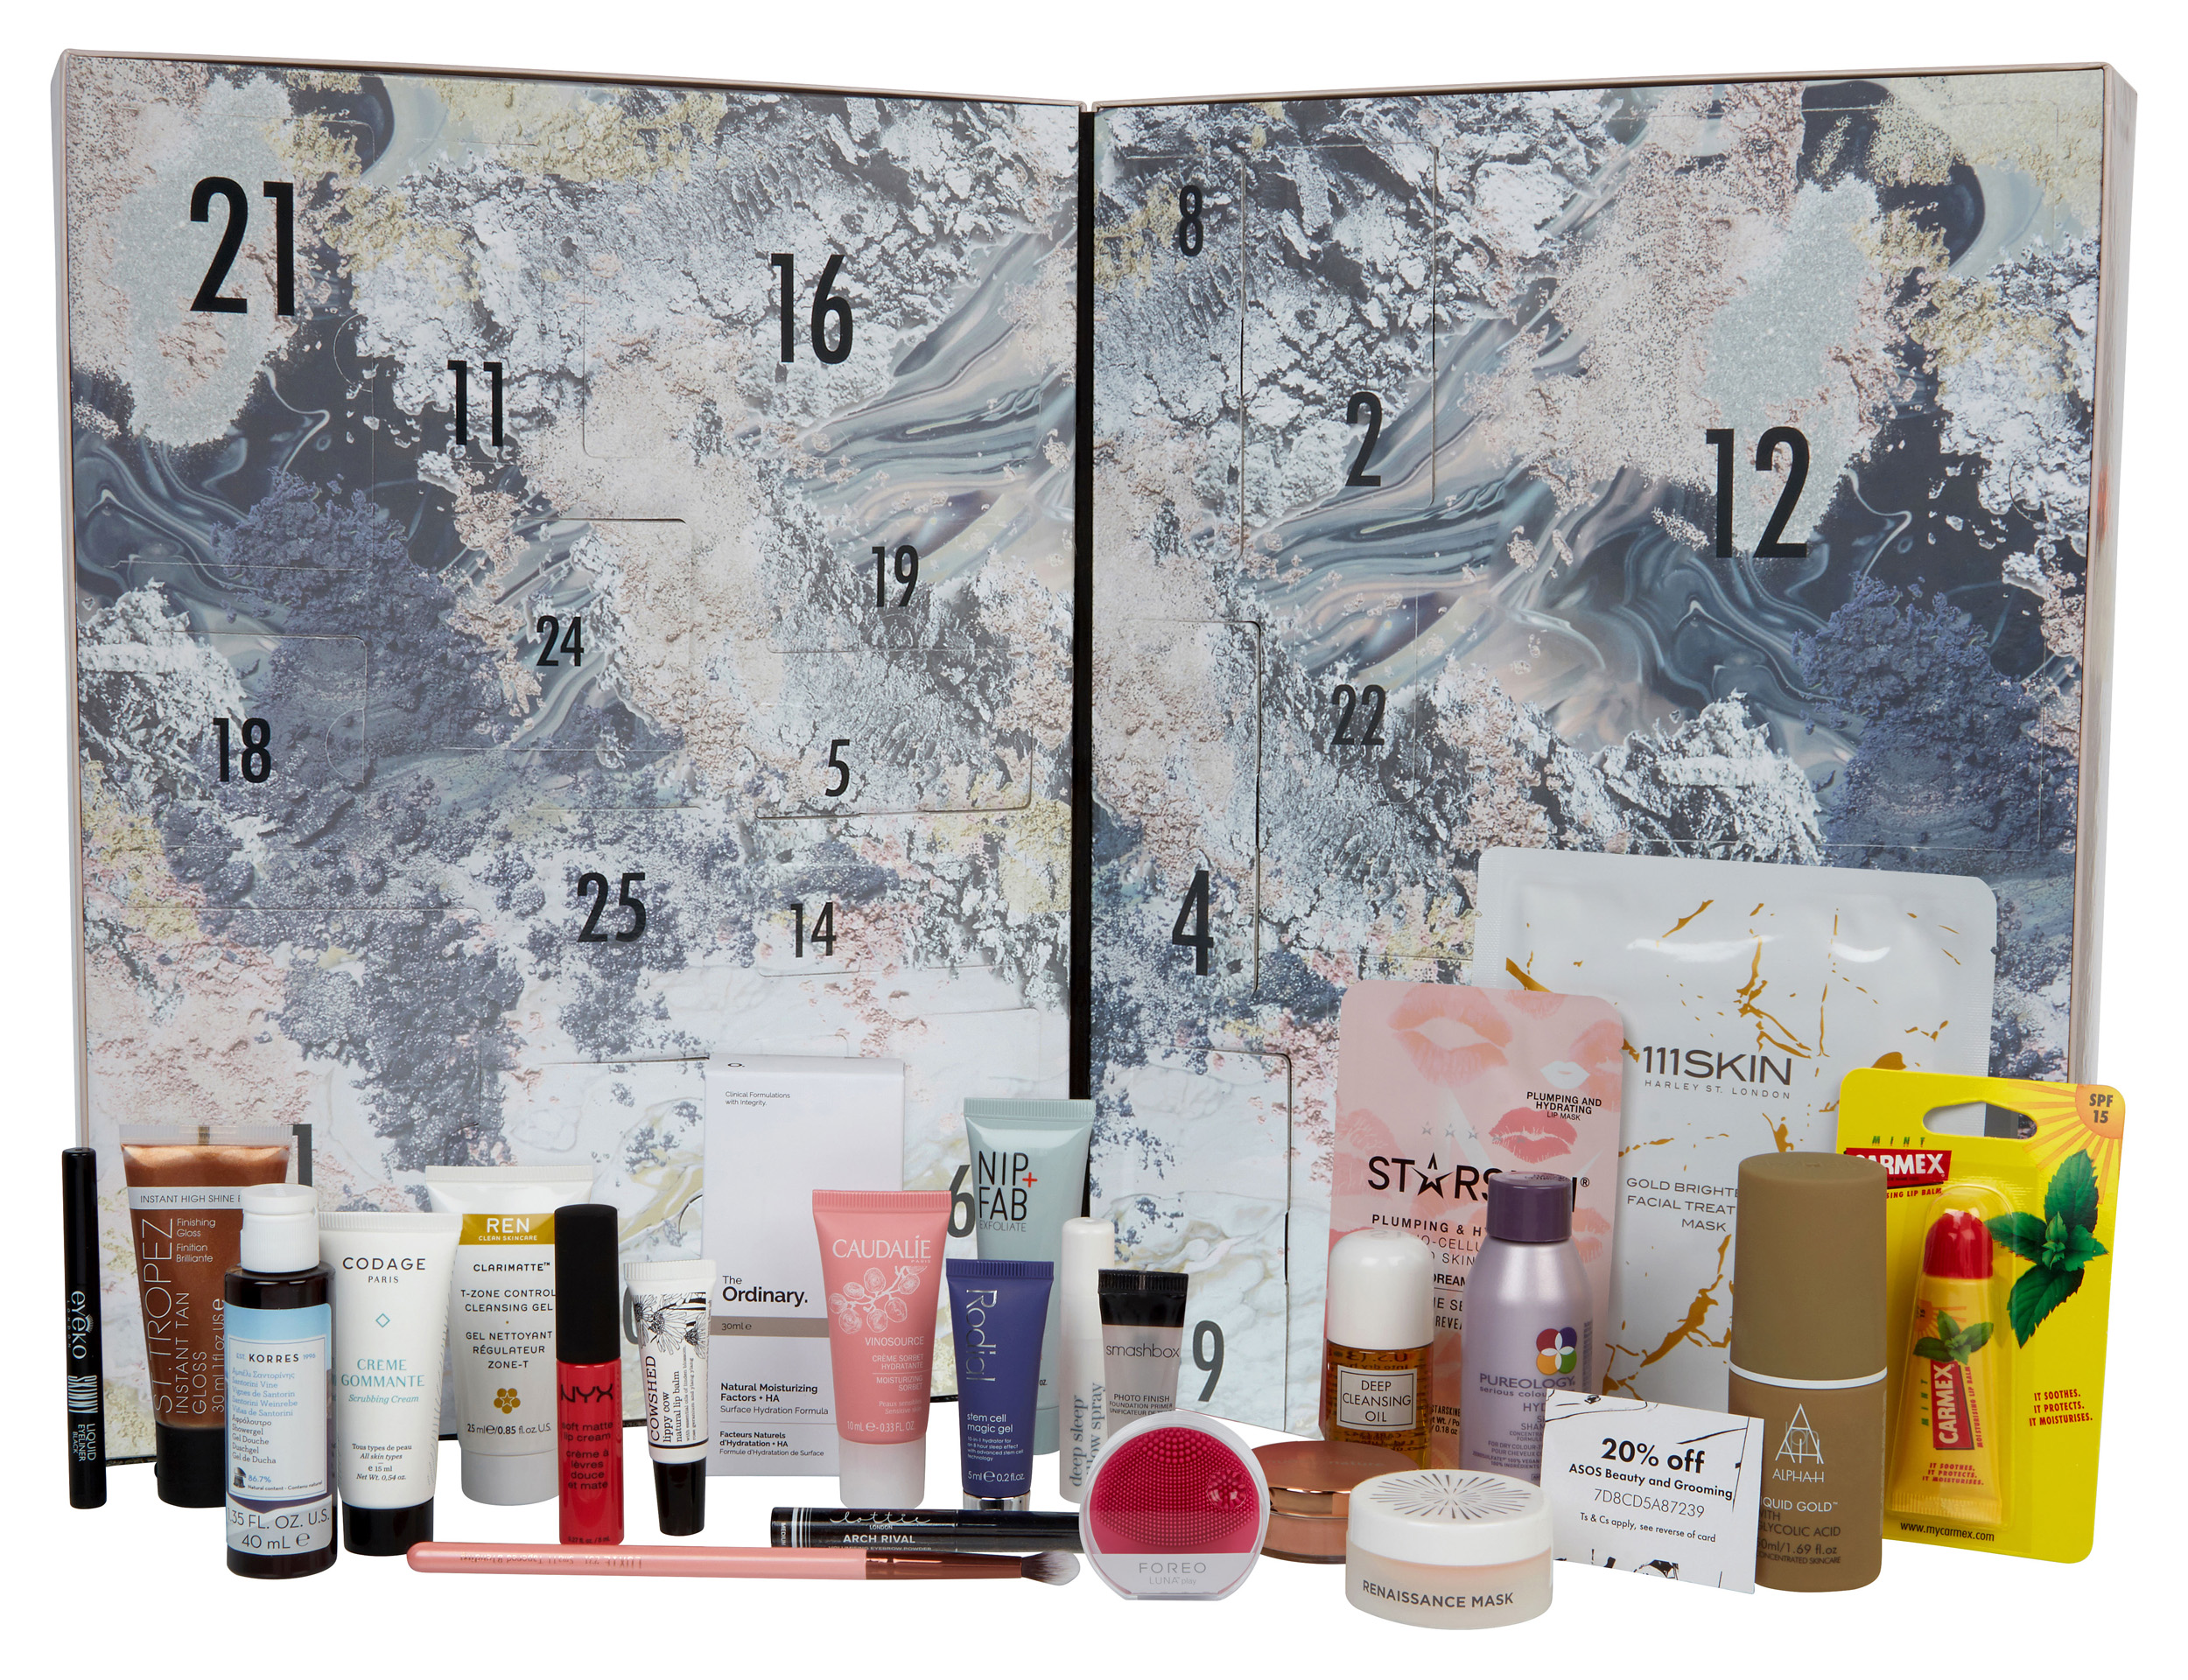 Calendario Avvento Essence.Calendari Dell Avvento Beauty 2017 11 Proposte Da Non